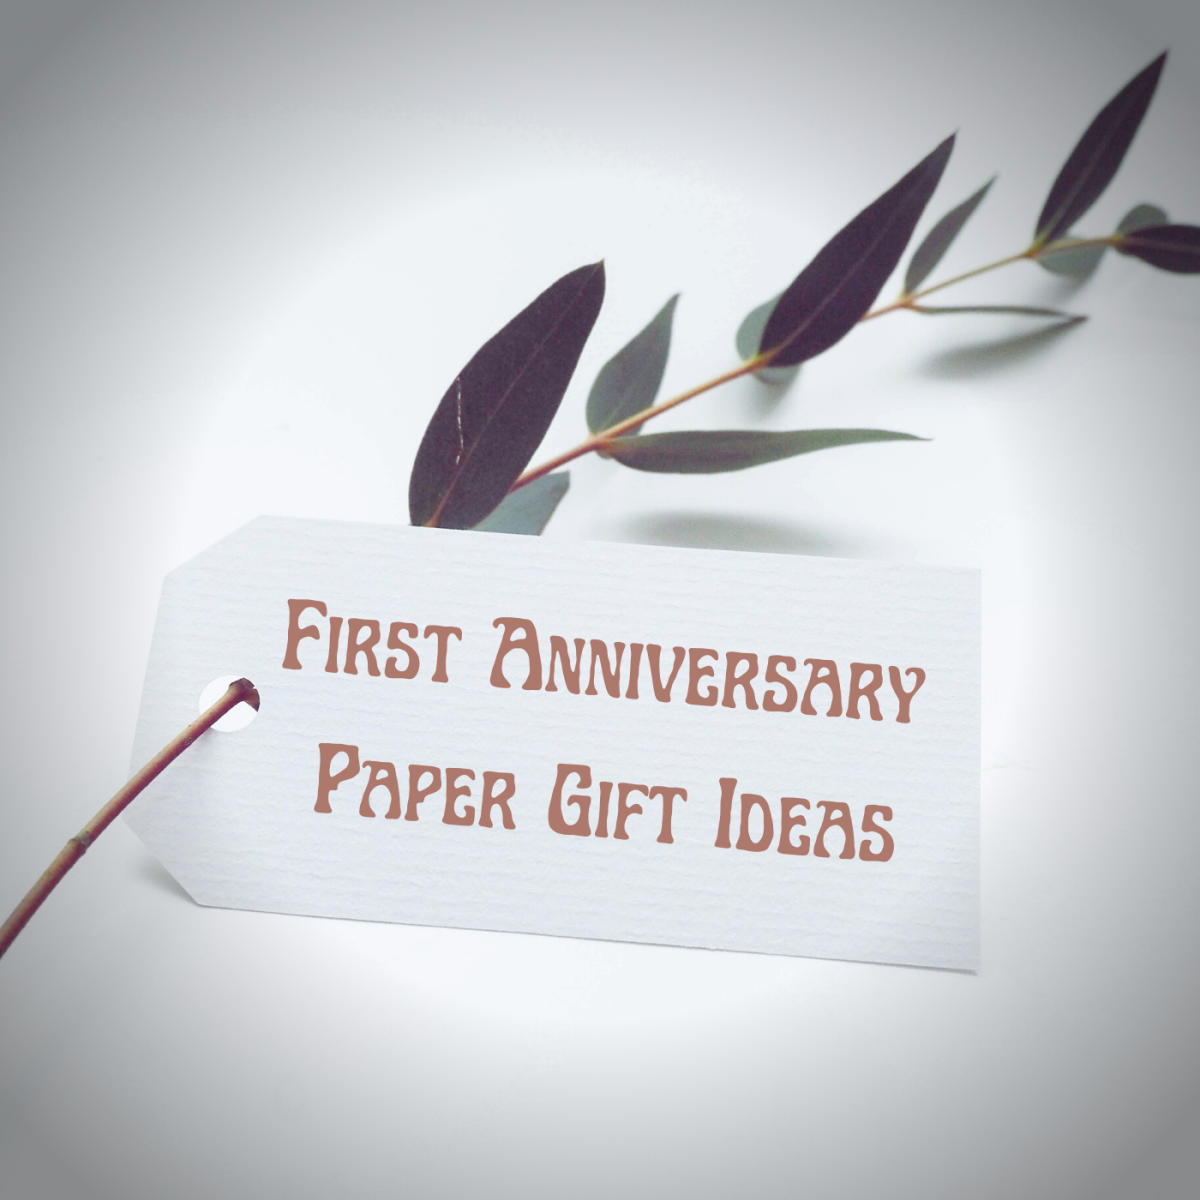 Gift ideas to make anyone smile on their first anniversary.